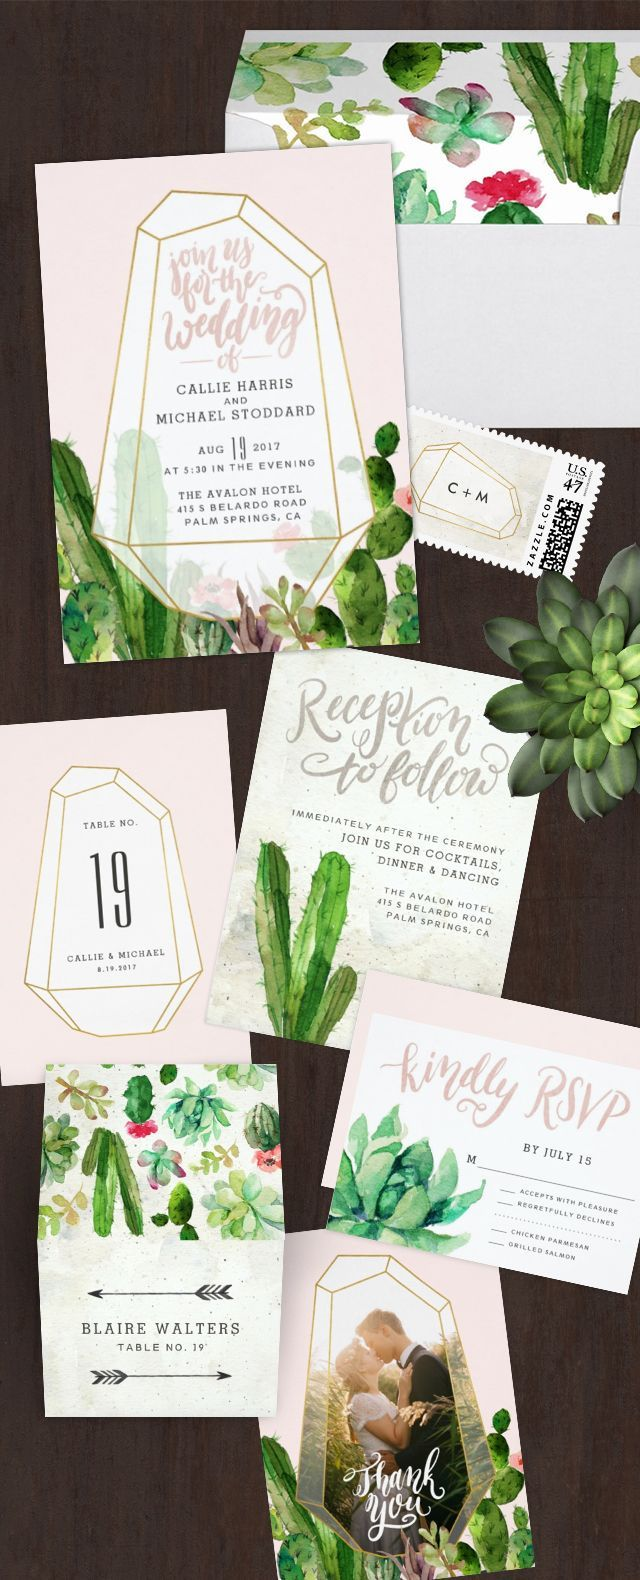 Desert Succulent wedding paper suite - perfect for a Palm Springs or desert wedding venue!